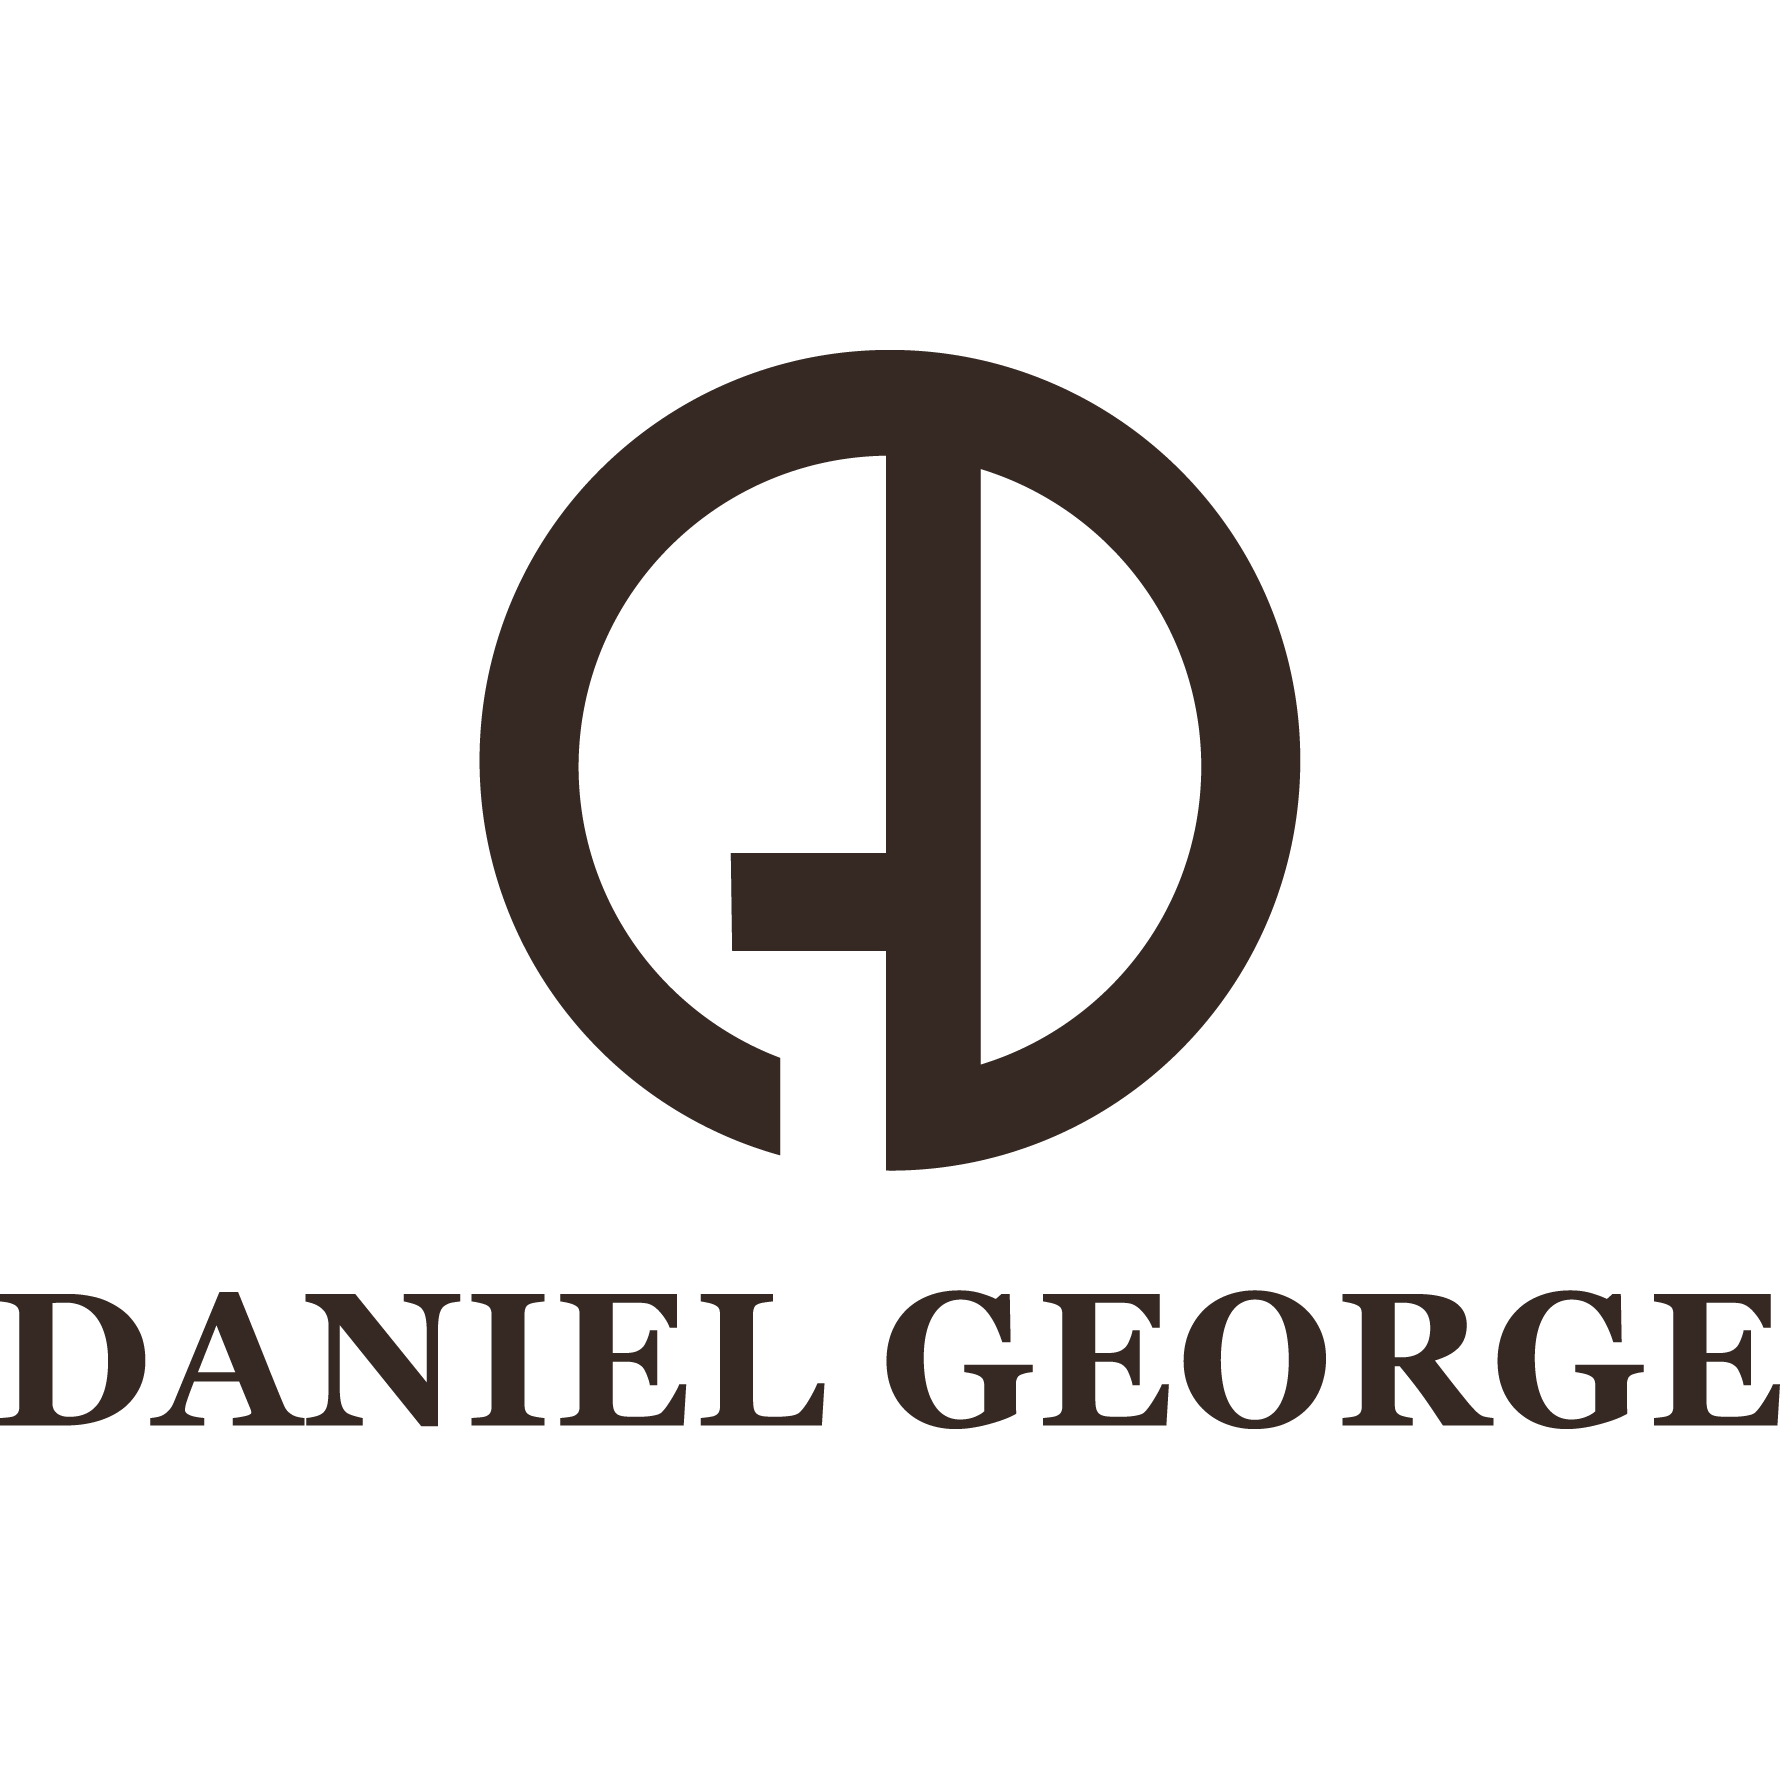 Daniel George Custom Suits - Chicago, IL 60601 - (312)729-5202 | ShowMeLocal.com